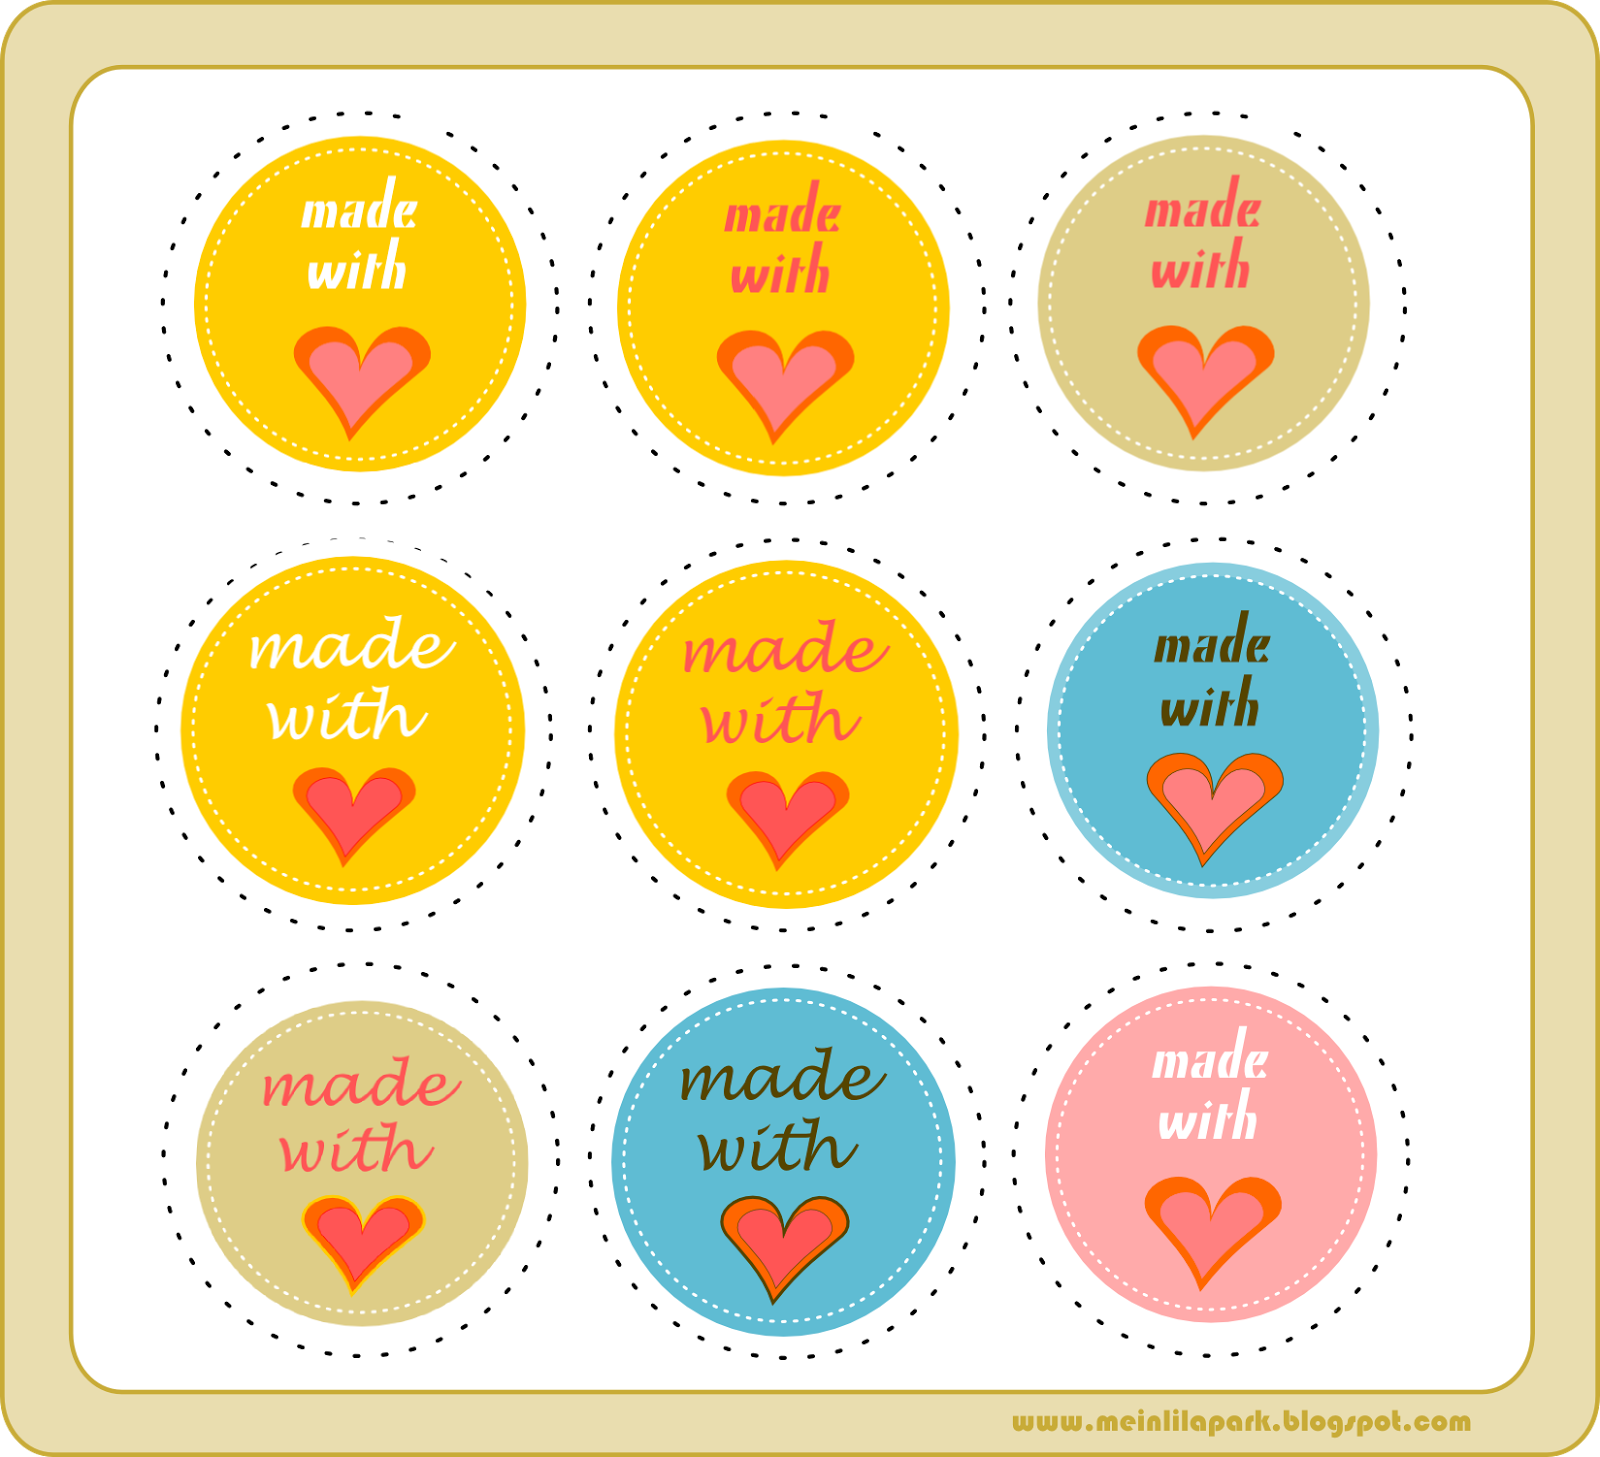 free printable made with love circle tags ausdruckbare etiketten freebie meinlilapark. Black Bedroom Furniture Sets. Home Design Ideas